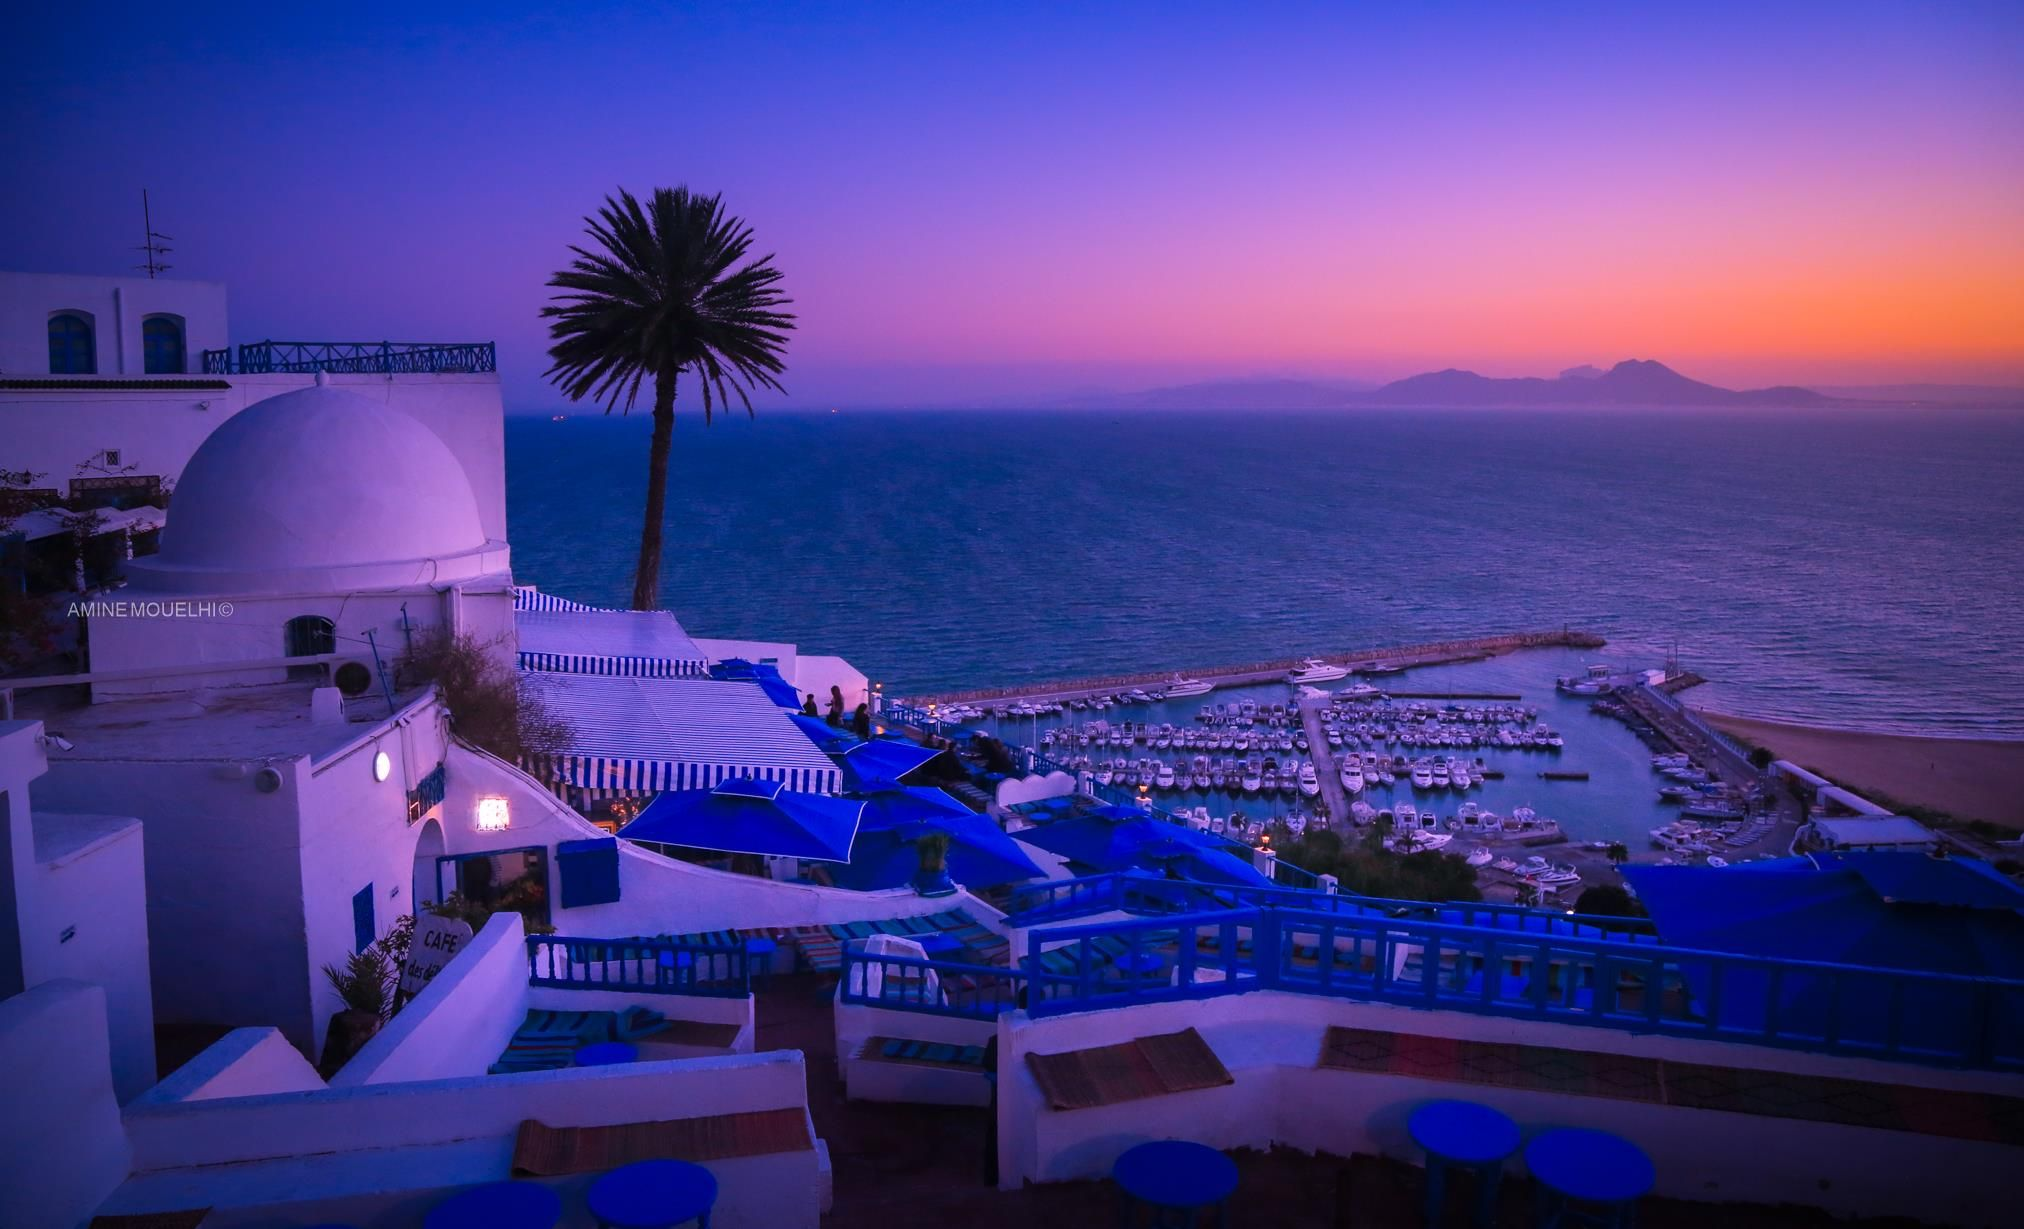 Sidi Bou Said Tunis:The most instagrammable city